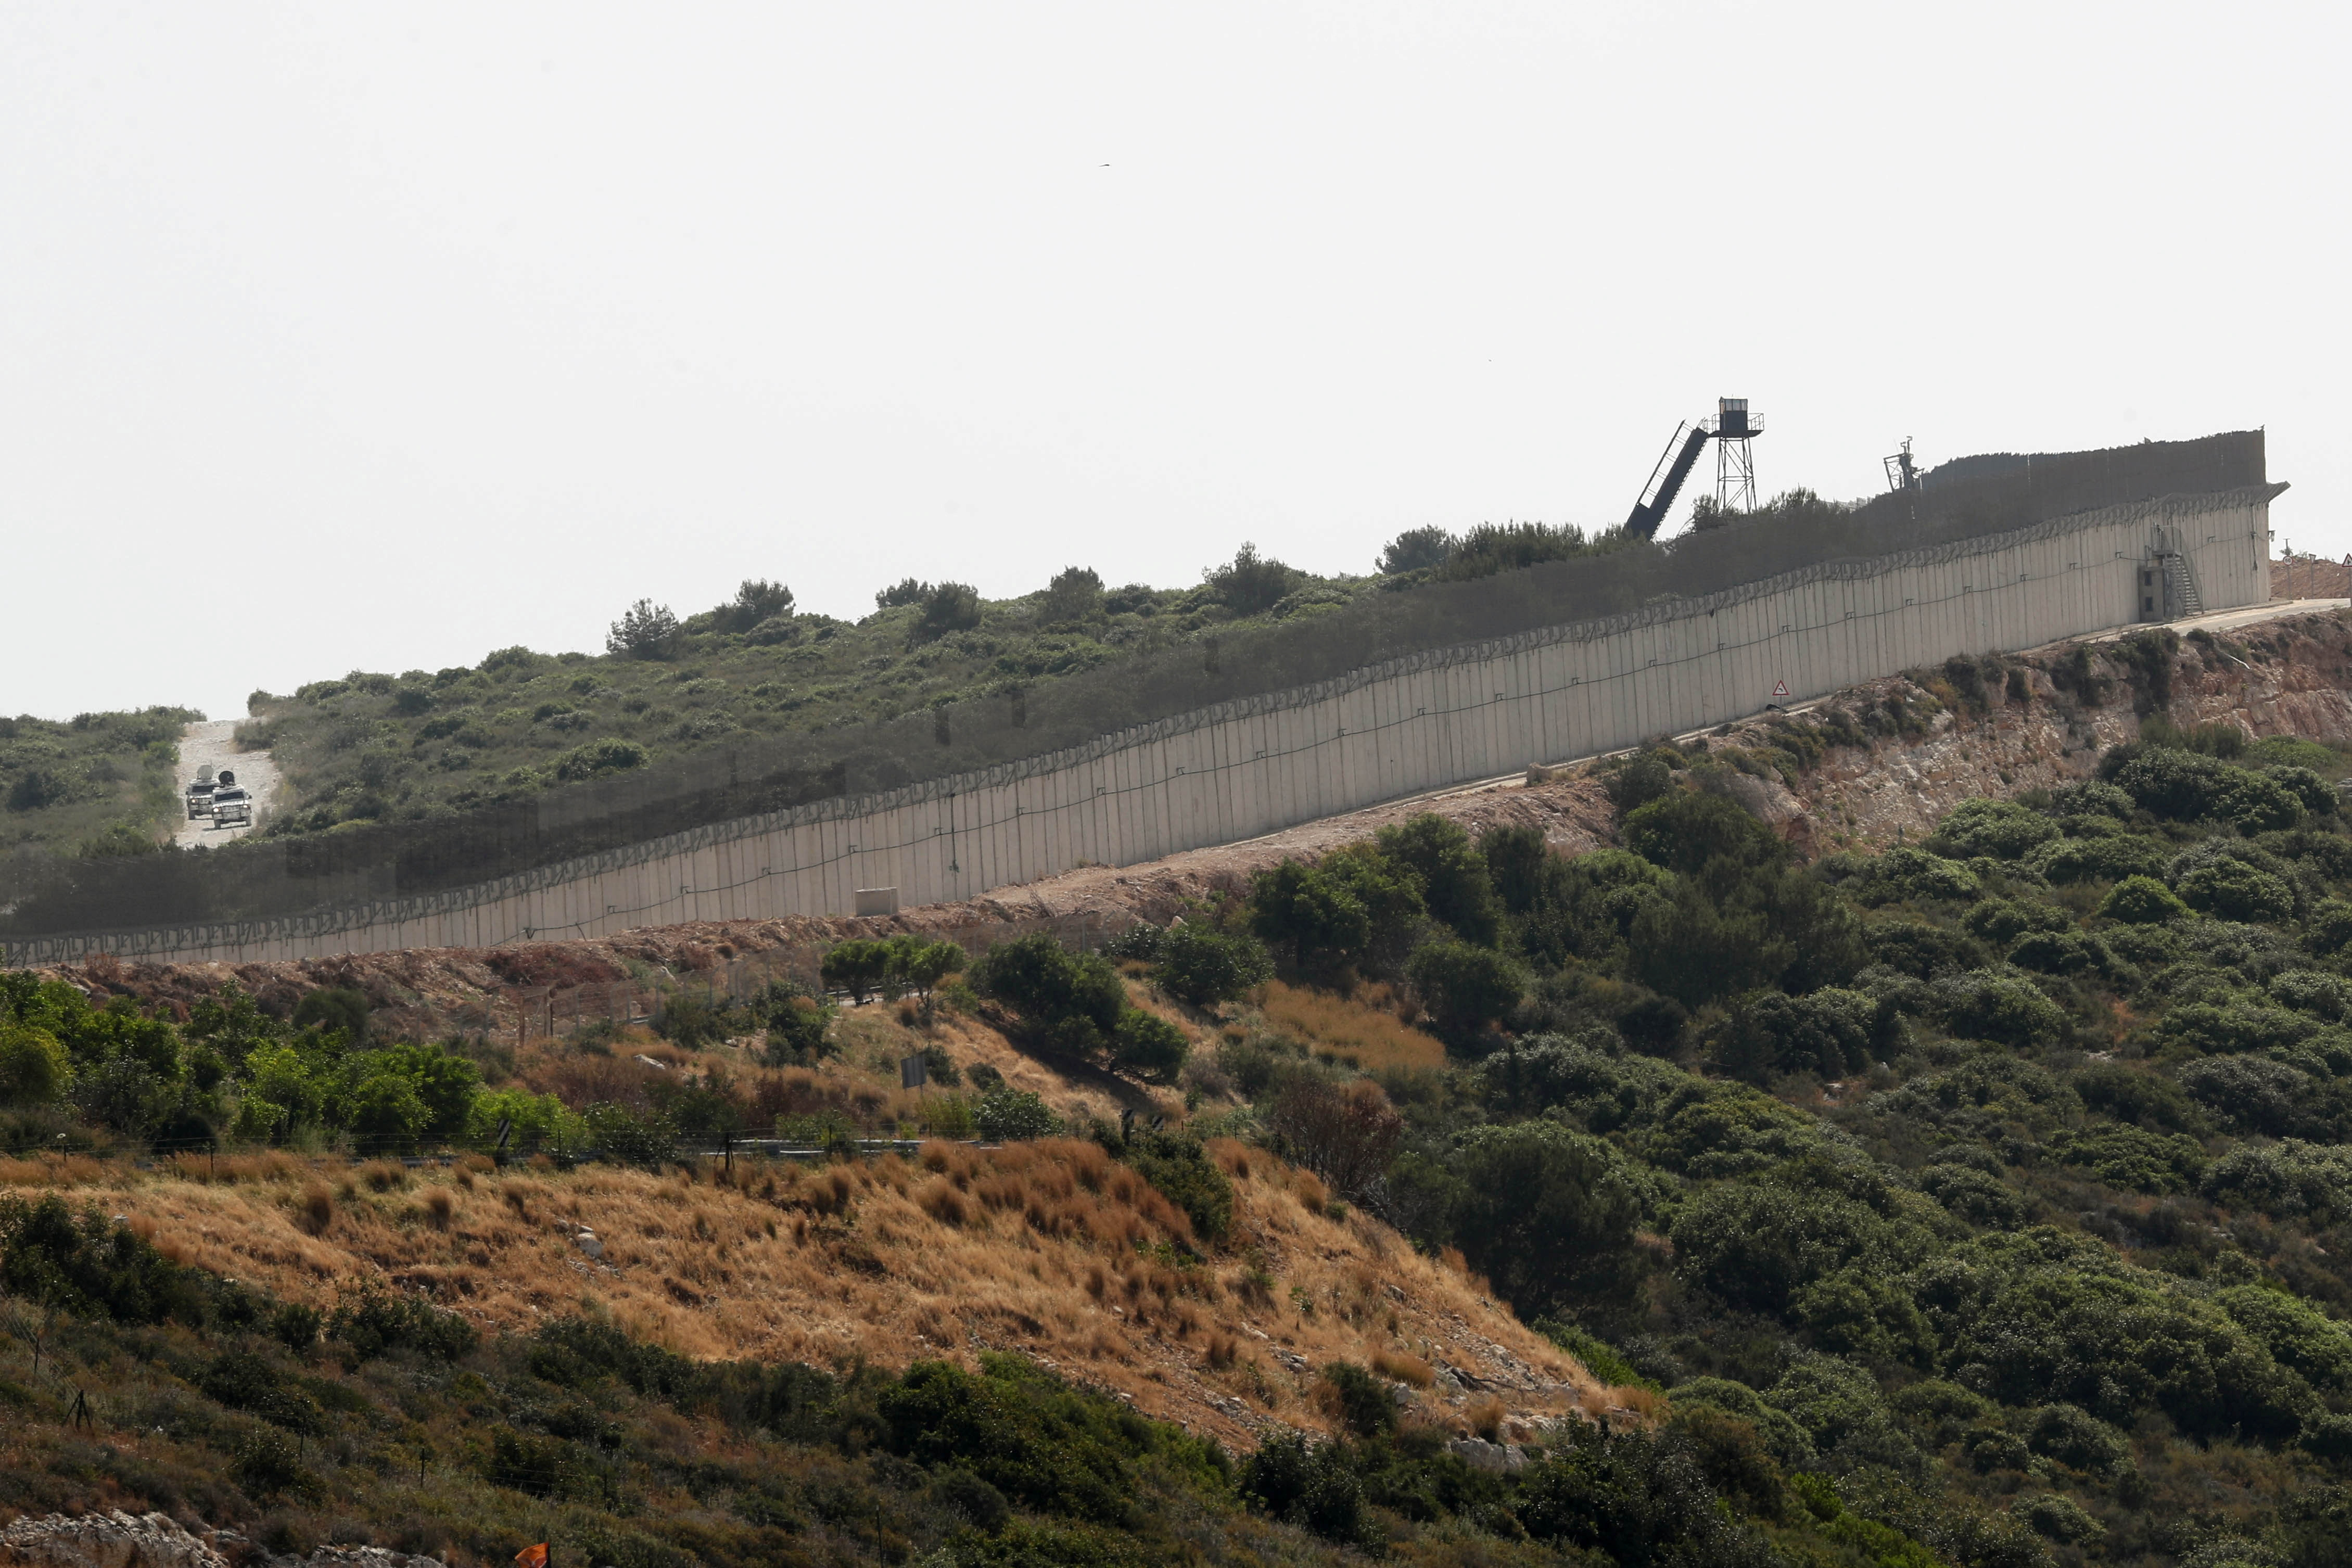 Vehicles are seen behind the border wall between Israel and Lebanon, as seen from Rosh Hanikra, northern Israel May 4, 2021. REUTERS/Ammar Awad